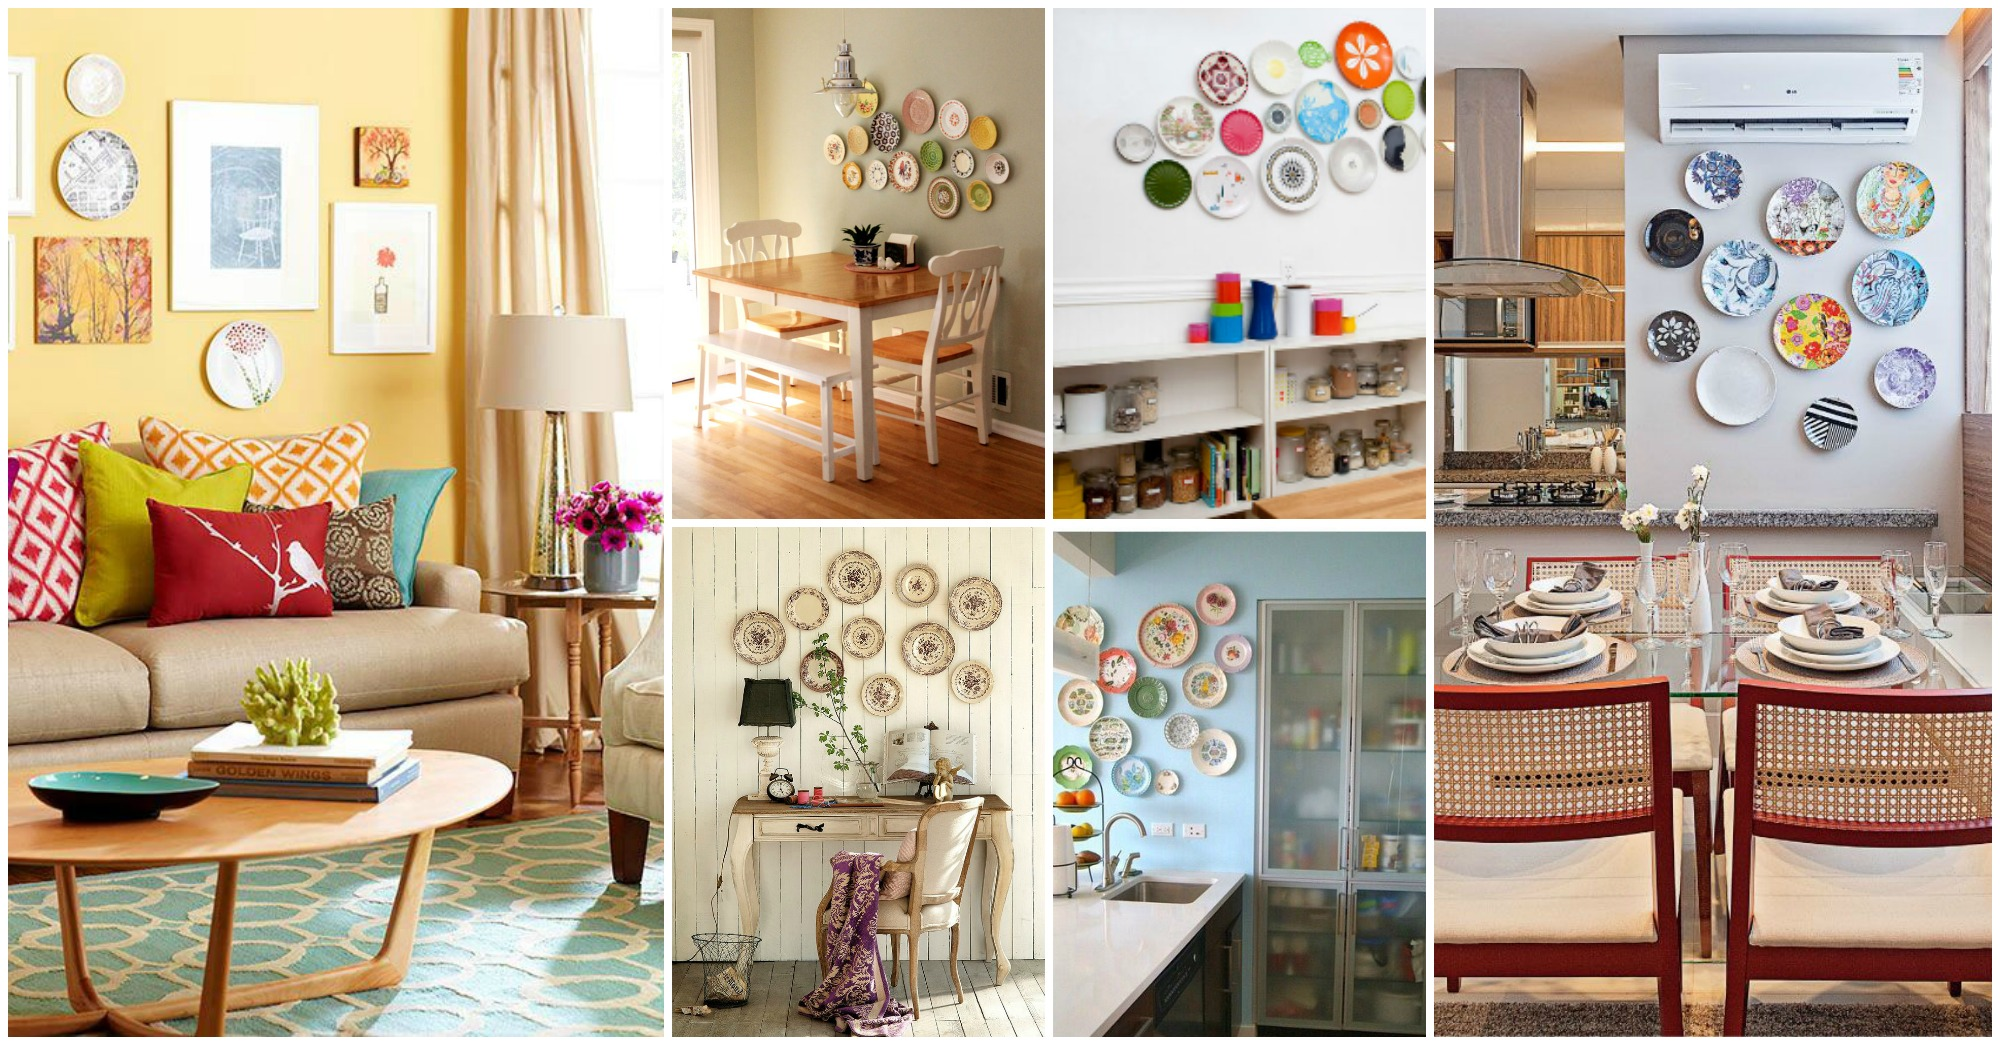 13 Amazing Ways to Enhance Your Interior With Plates